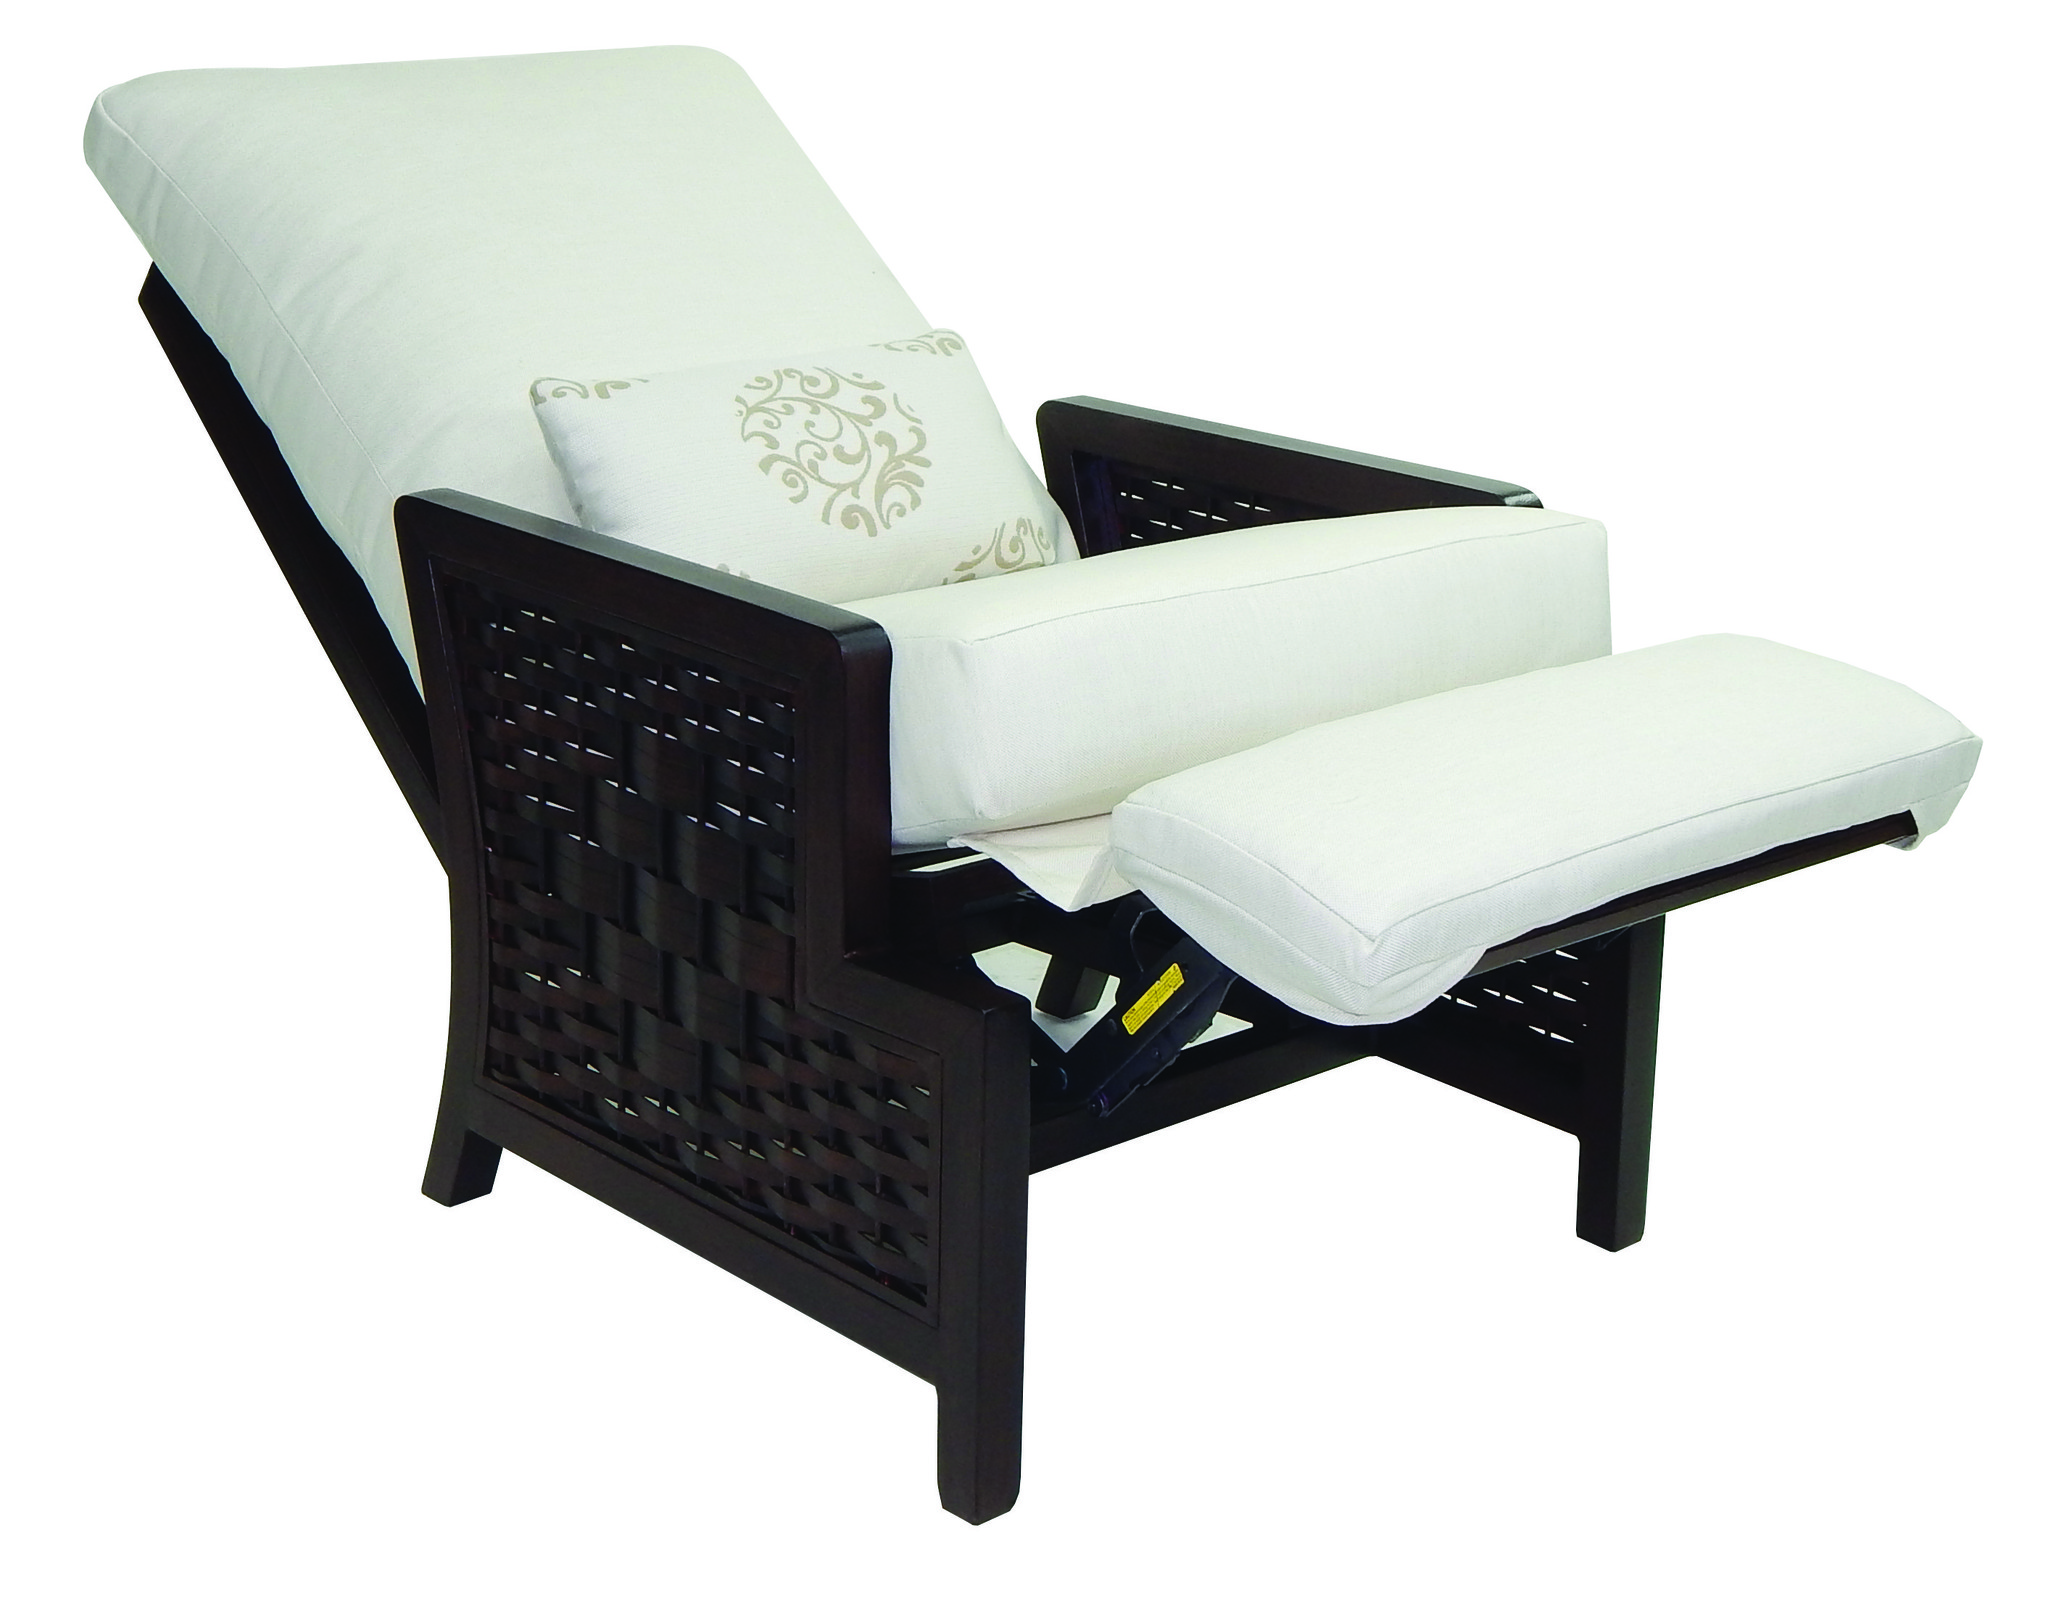 correct posture lounge chair cheap outdoor chaise chairs spanish bay cushion 3 position recliner w one